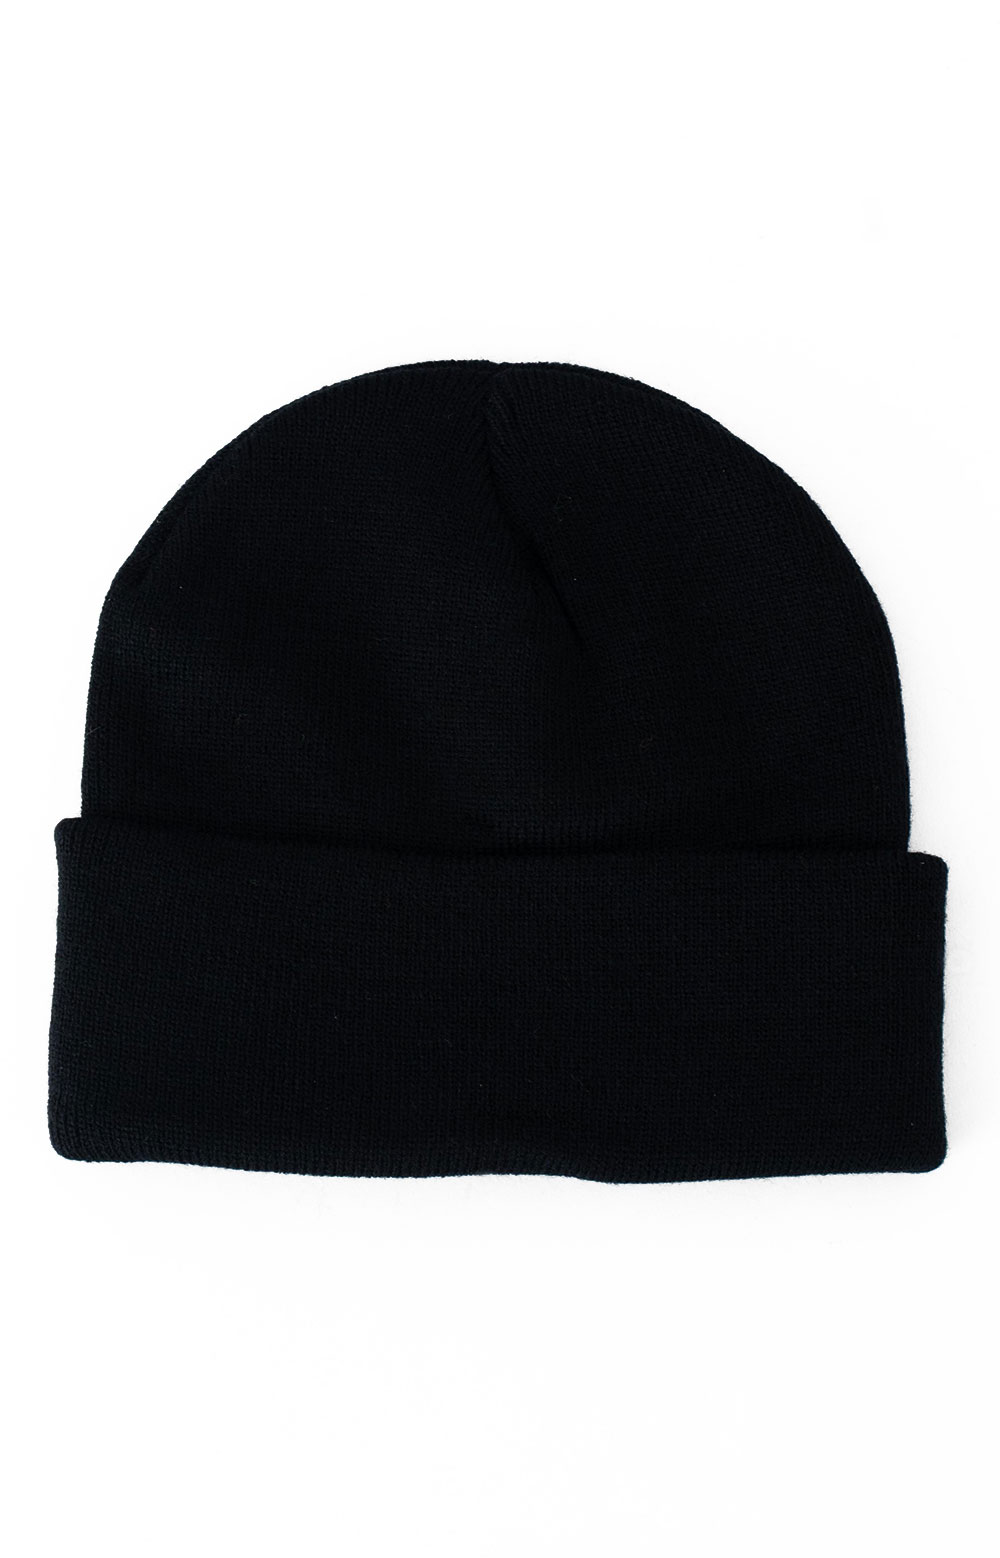 (5787) Rothco Deluxe Fine Knit Watch Cap - Black